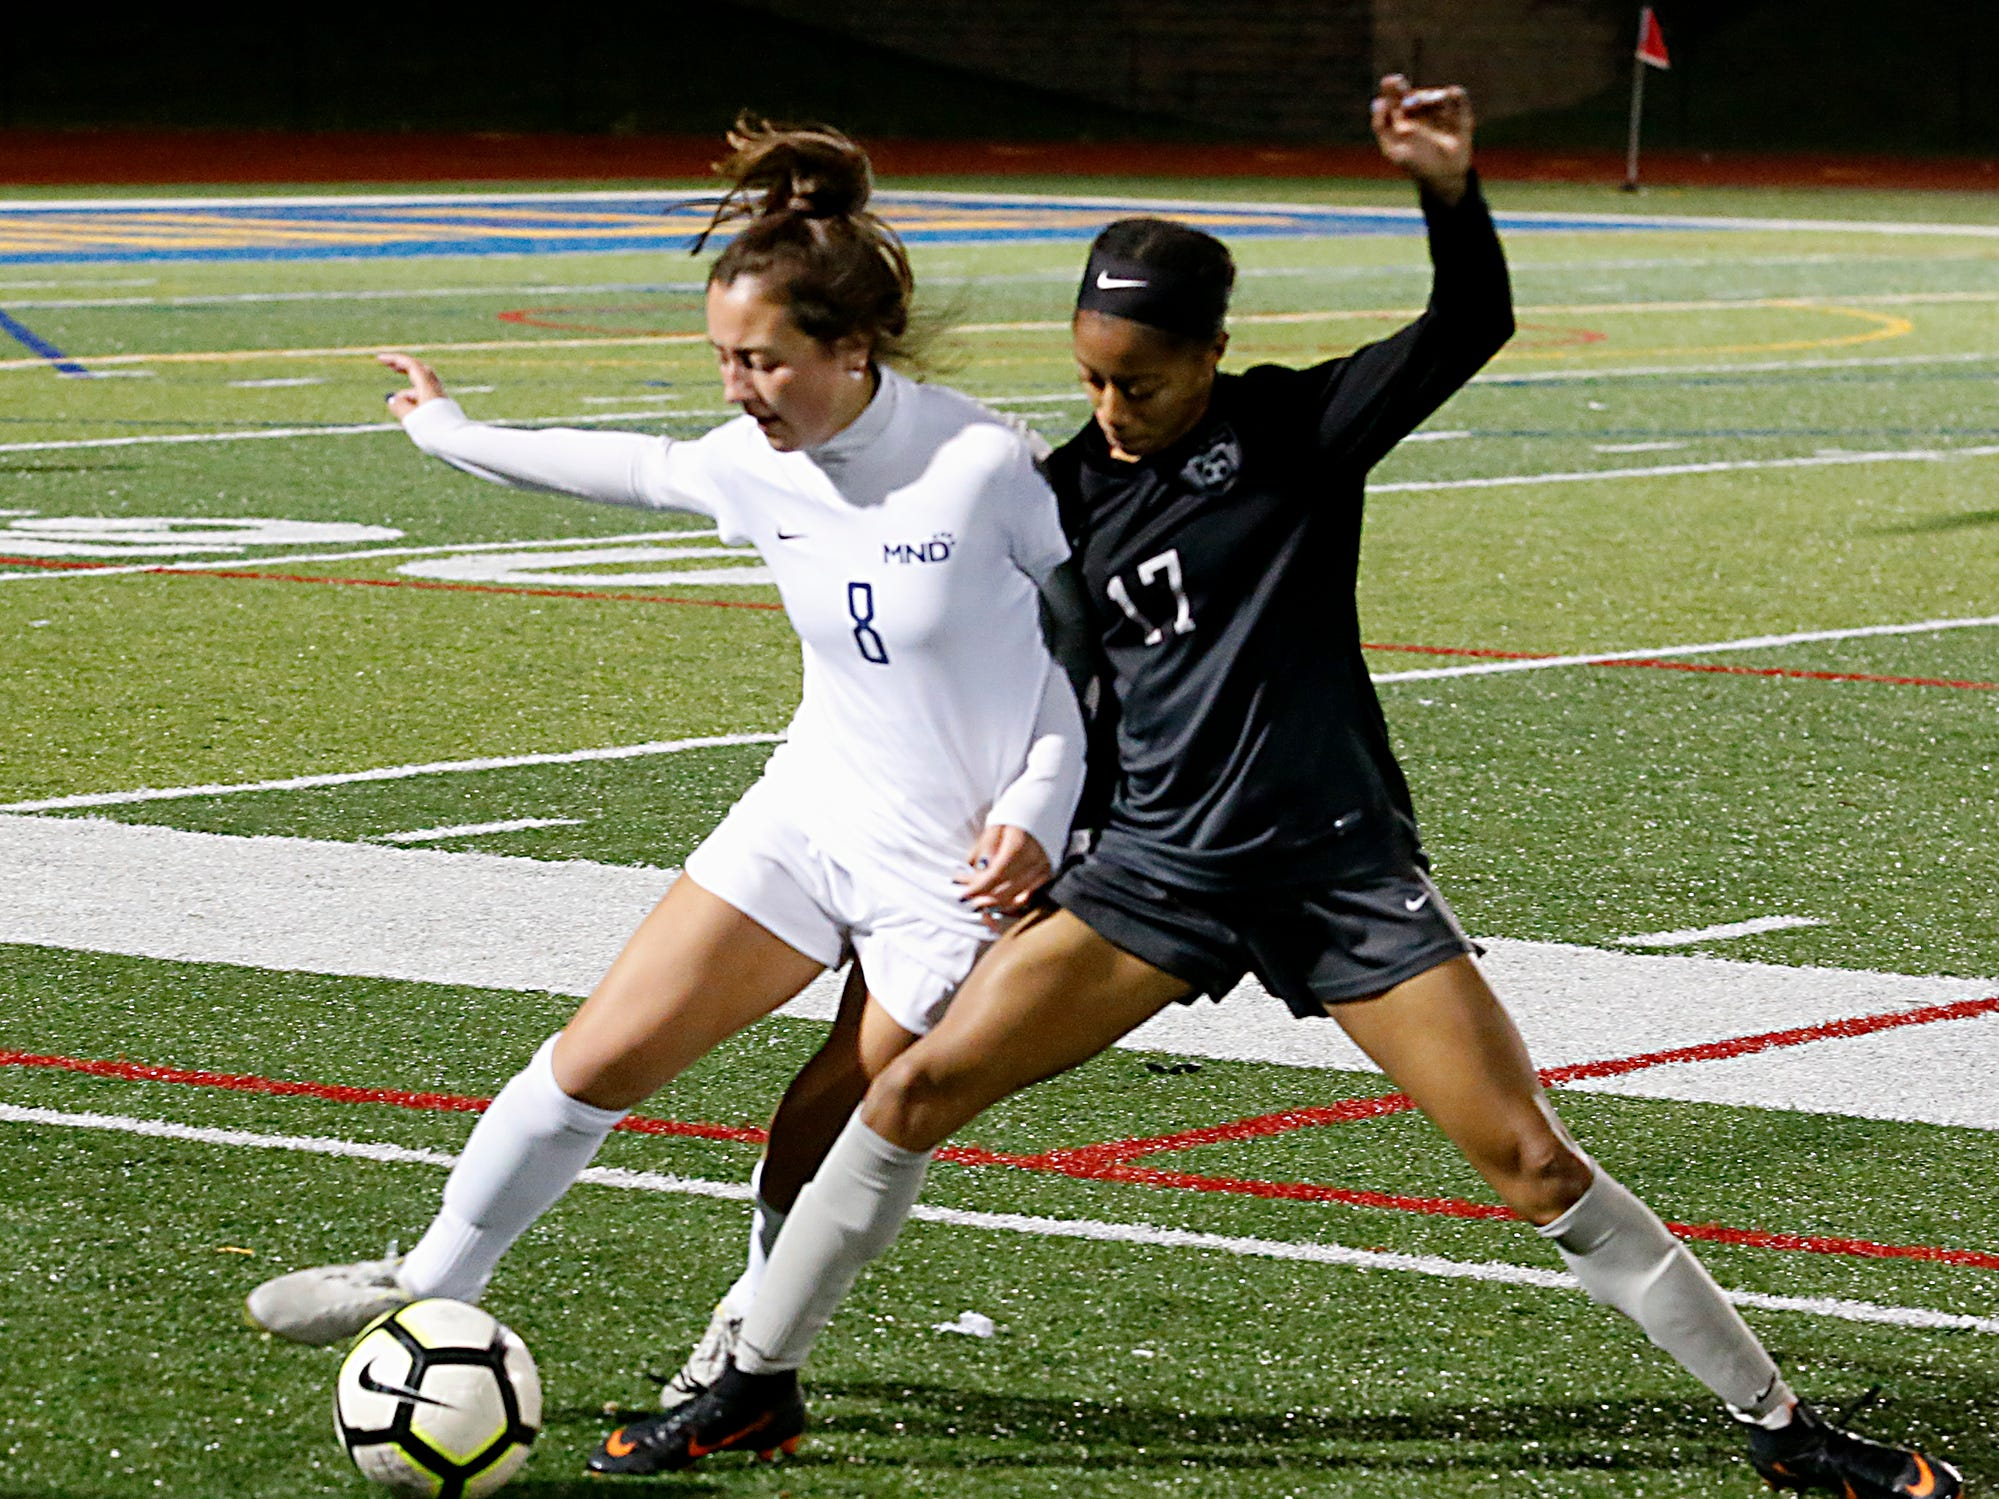 Mount Notre Dame forward Lauren Ritter and Lakota East defender Brooke Brown battle for the ball during their Division I Southwest district final soccer game at Walnut Hills in Cincinnati Saturday, Oct. 27, 2018.